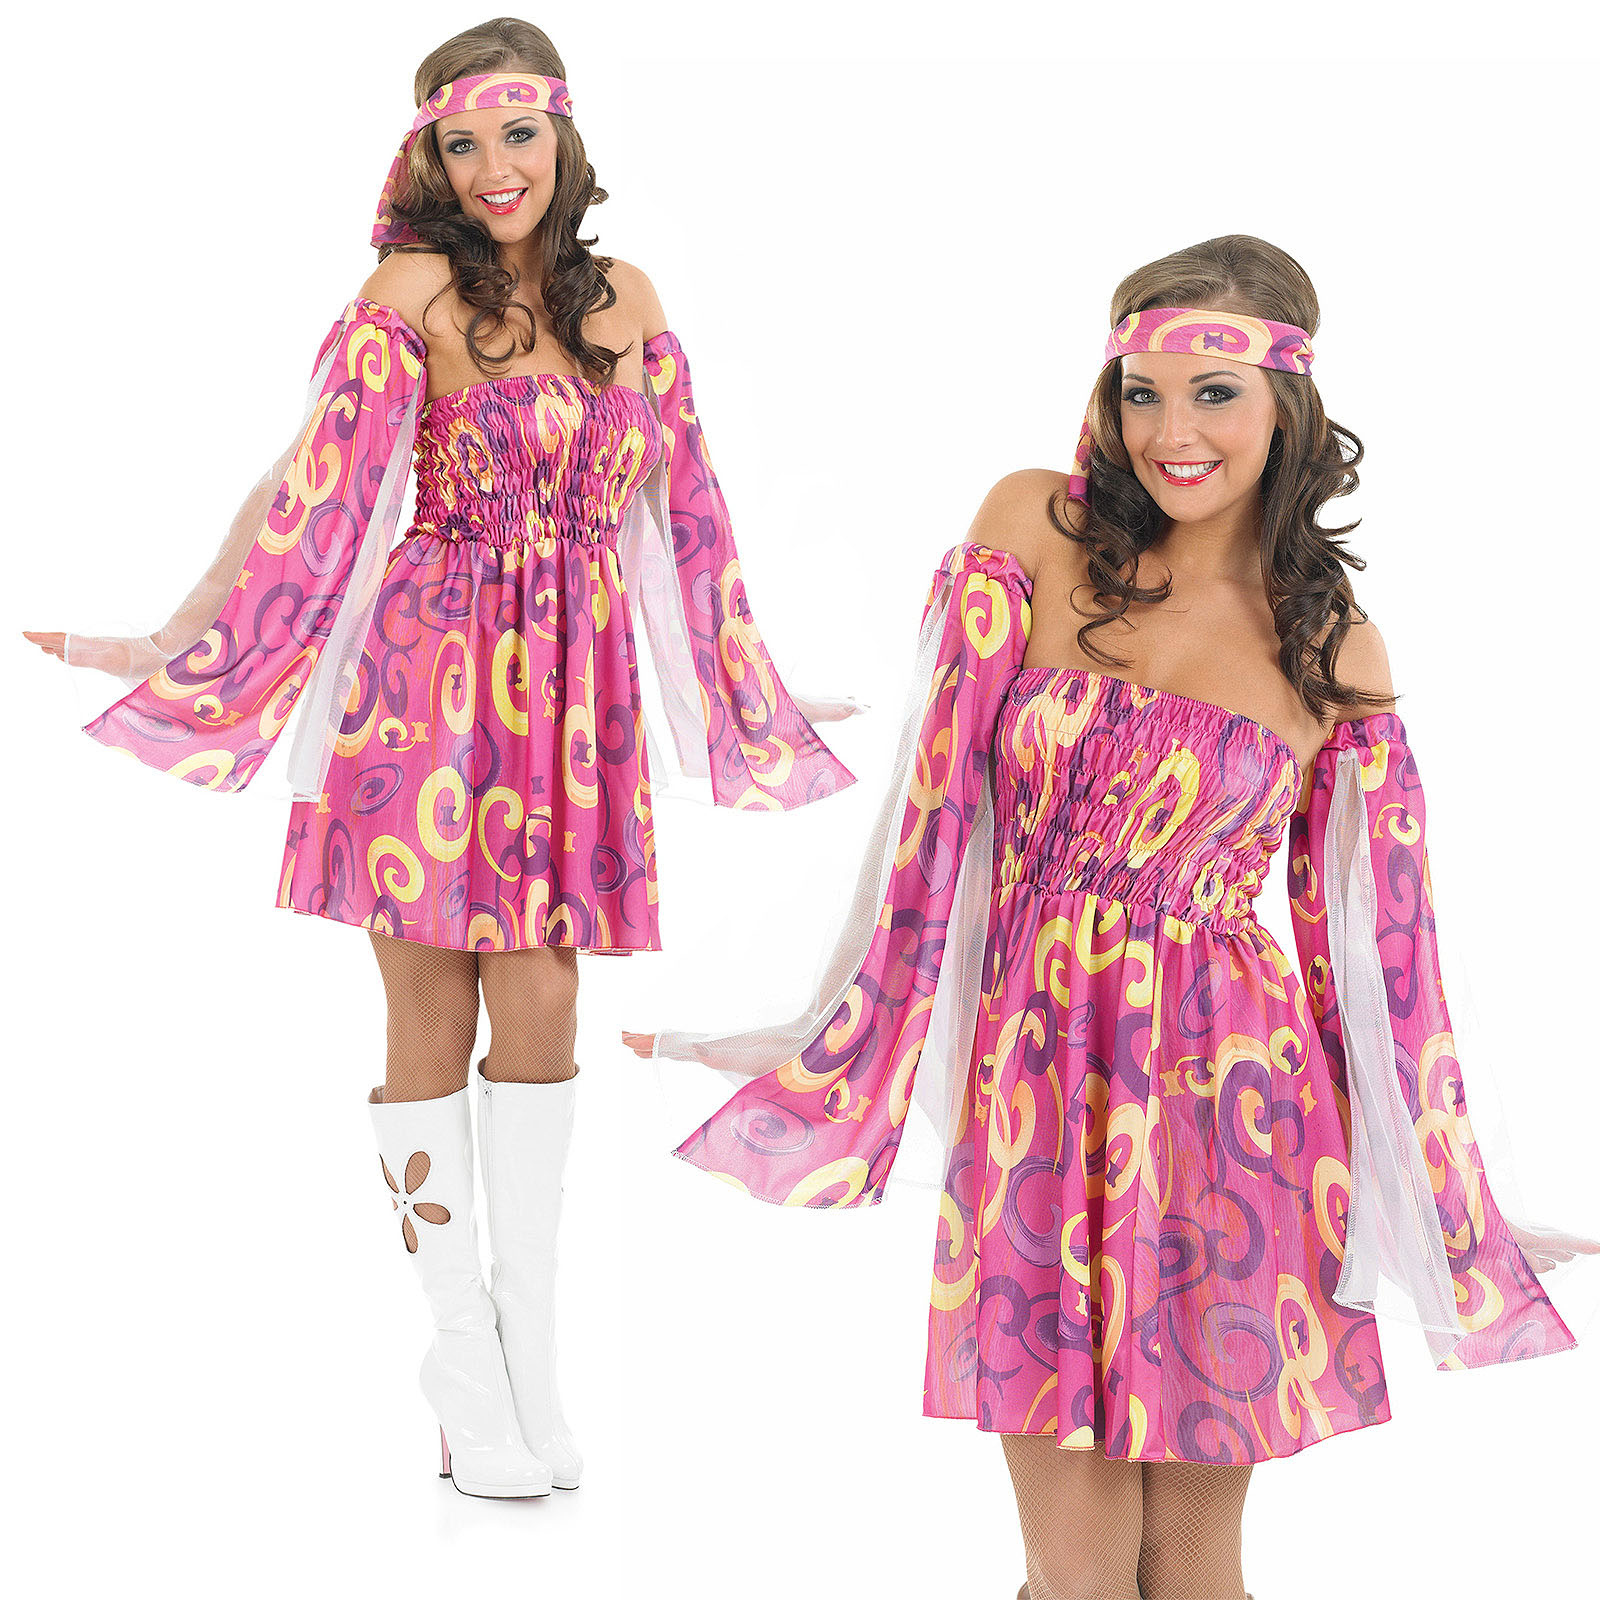 Ladies 1960s Pink Swirl Fancy Dress Costume Hippy Hippie 60s Outfit Uk 8 30 Ebay